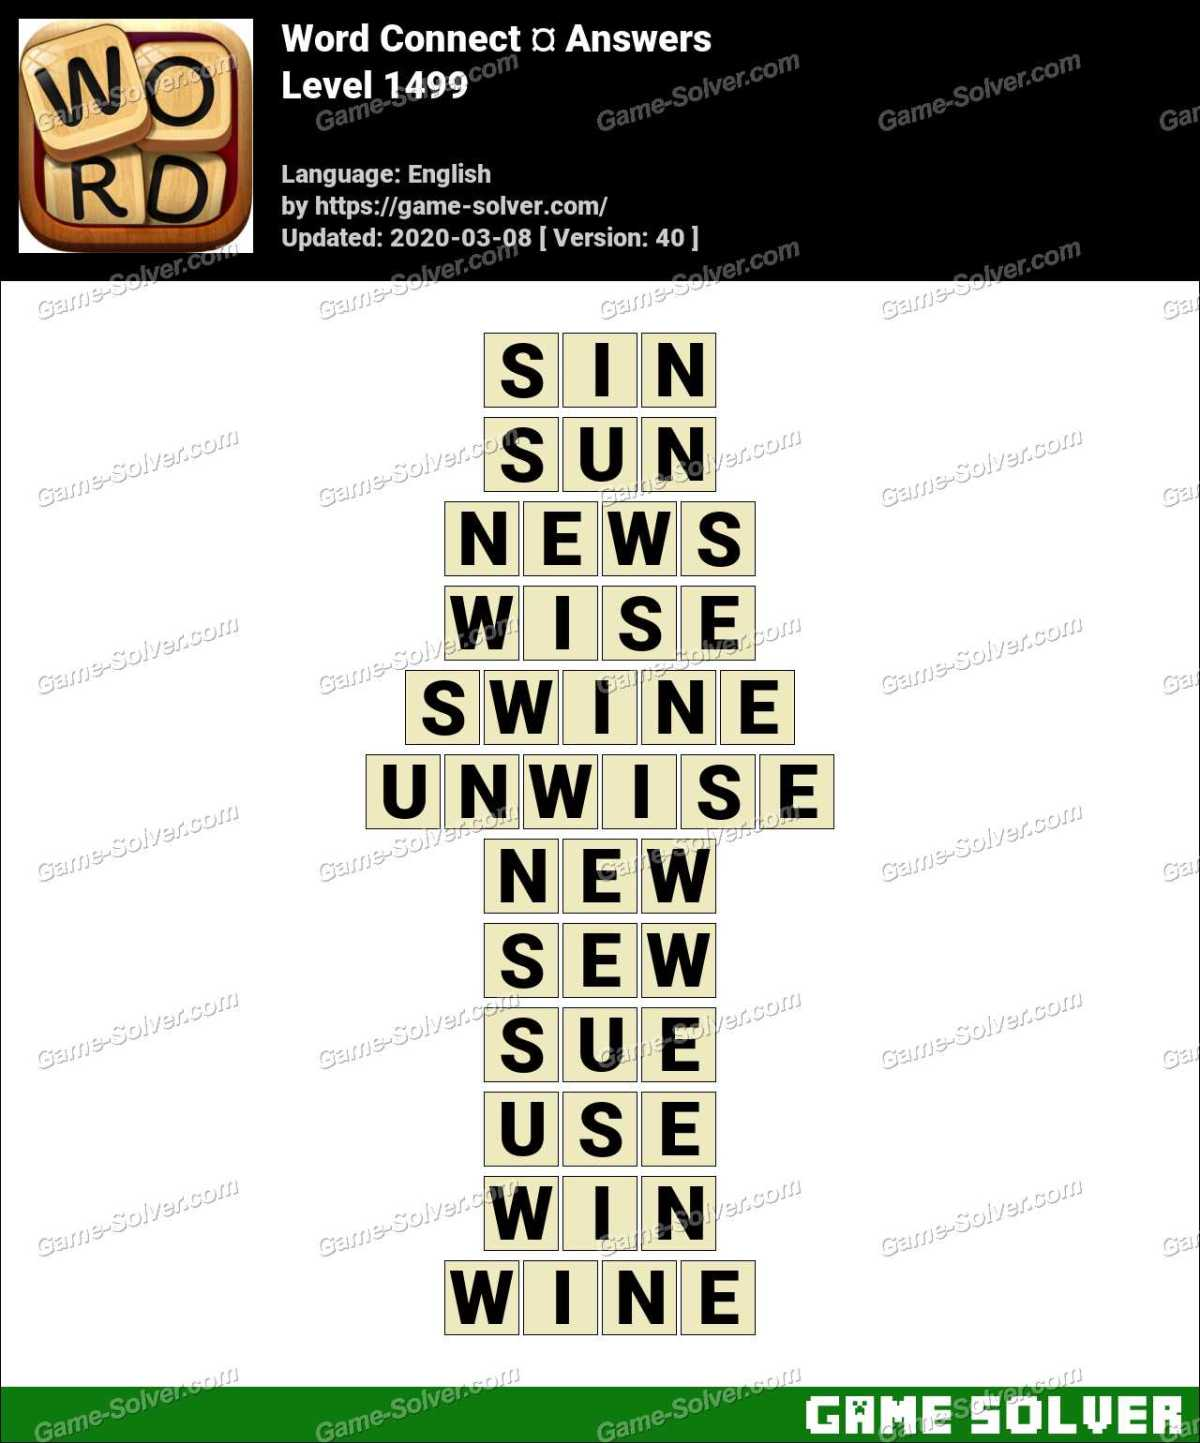 Word Connect Level 1499 Answers